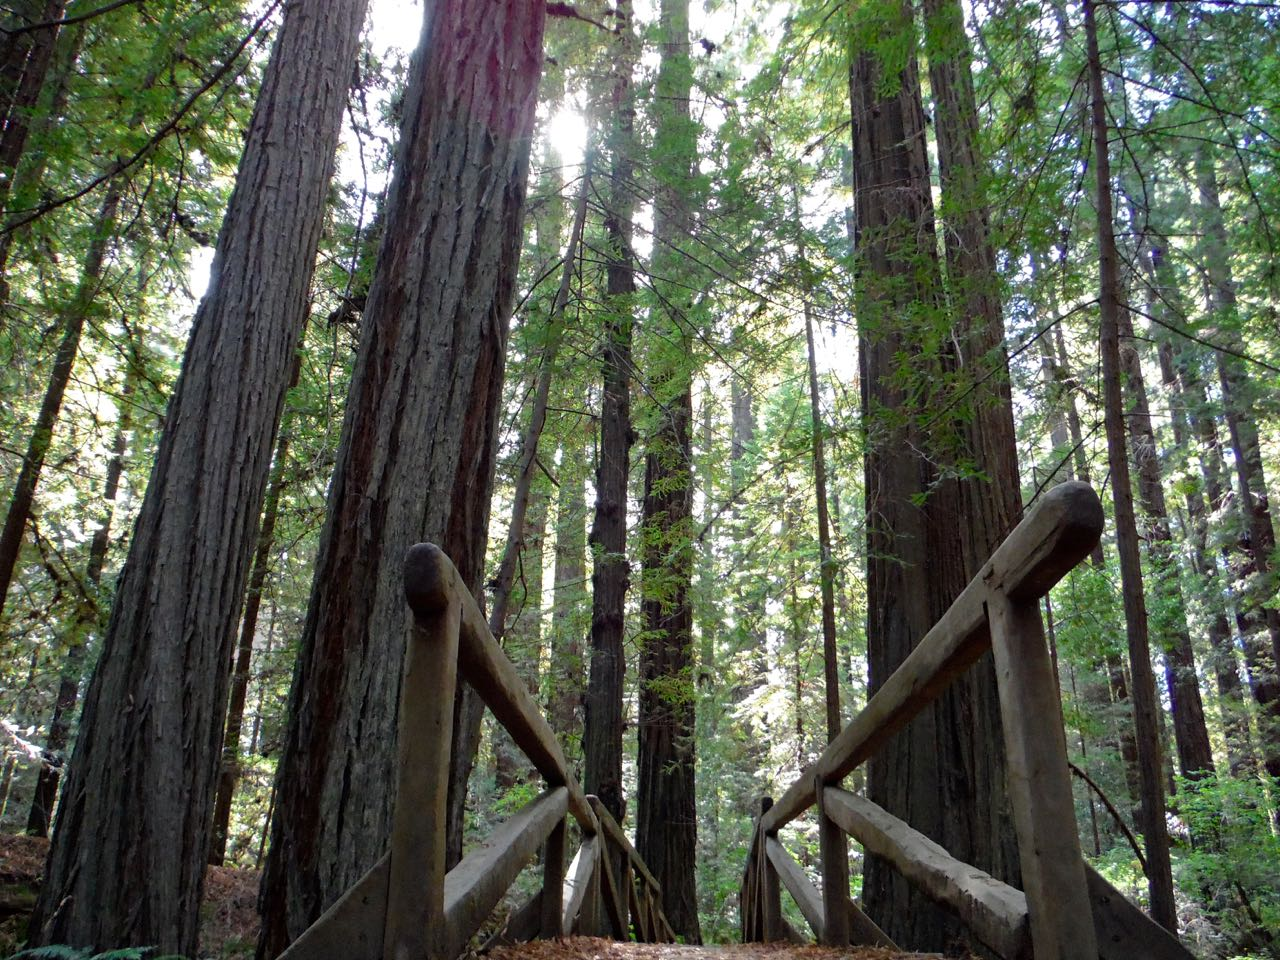 Redwoods 2017 10 08 55 Of 287